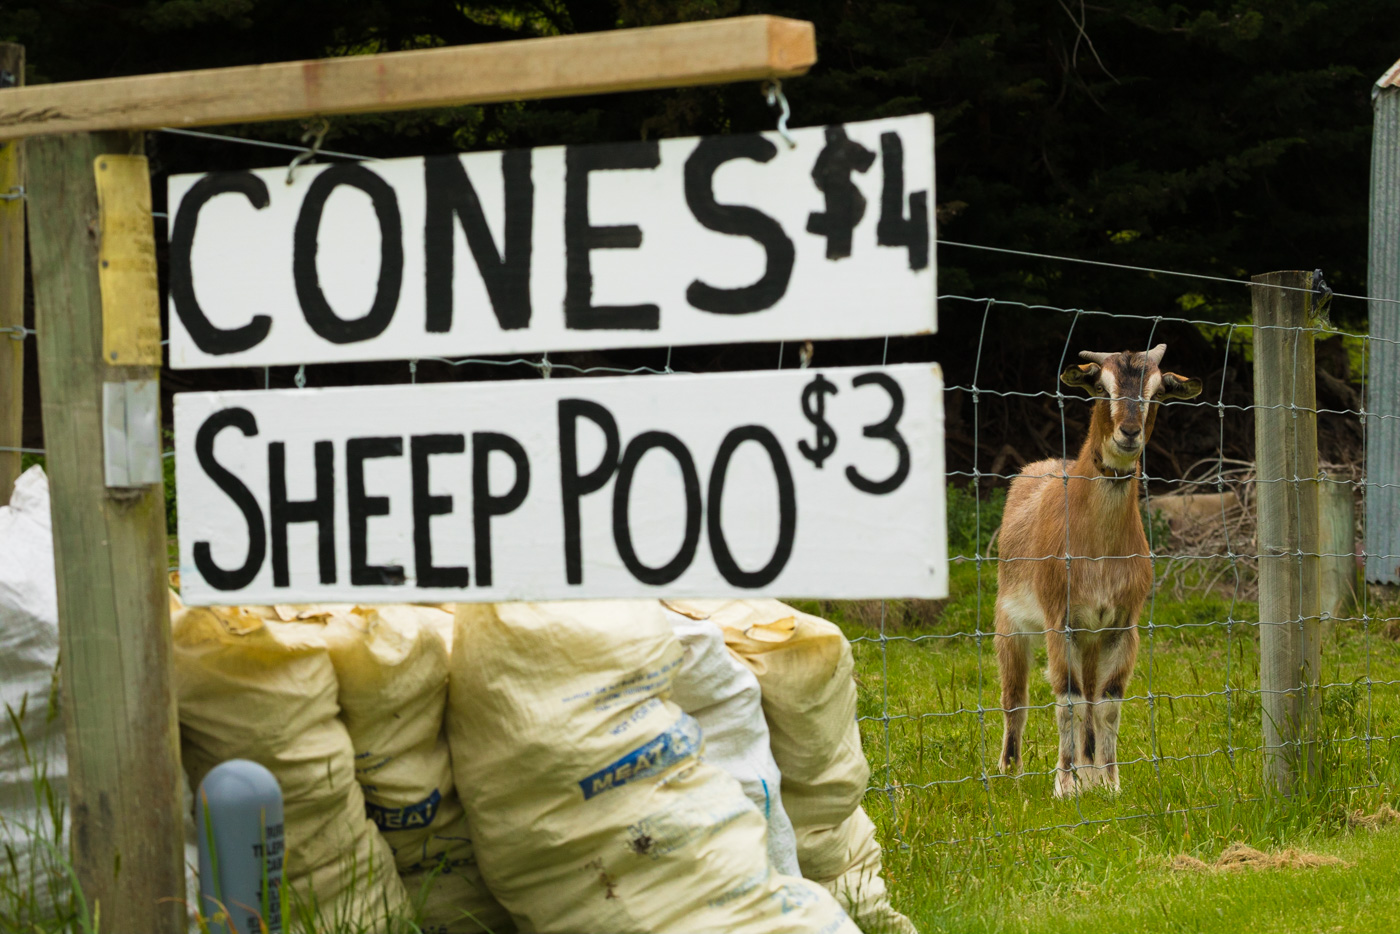 One thing about having 30 million sheep? Lot's of sheep poo.